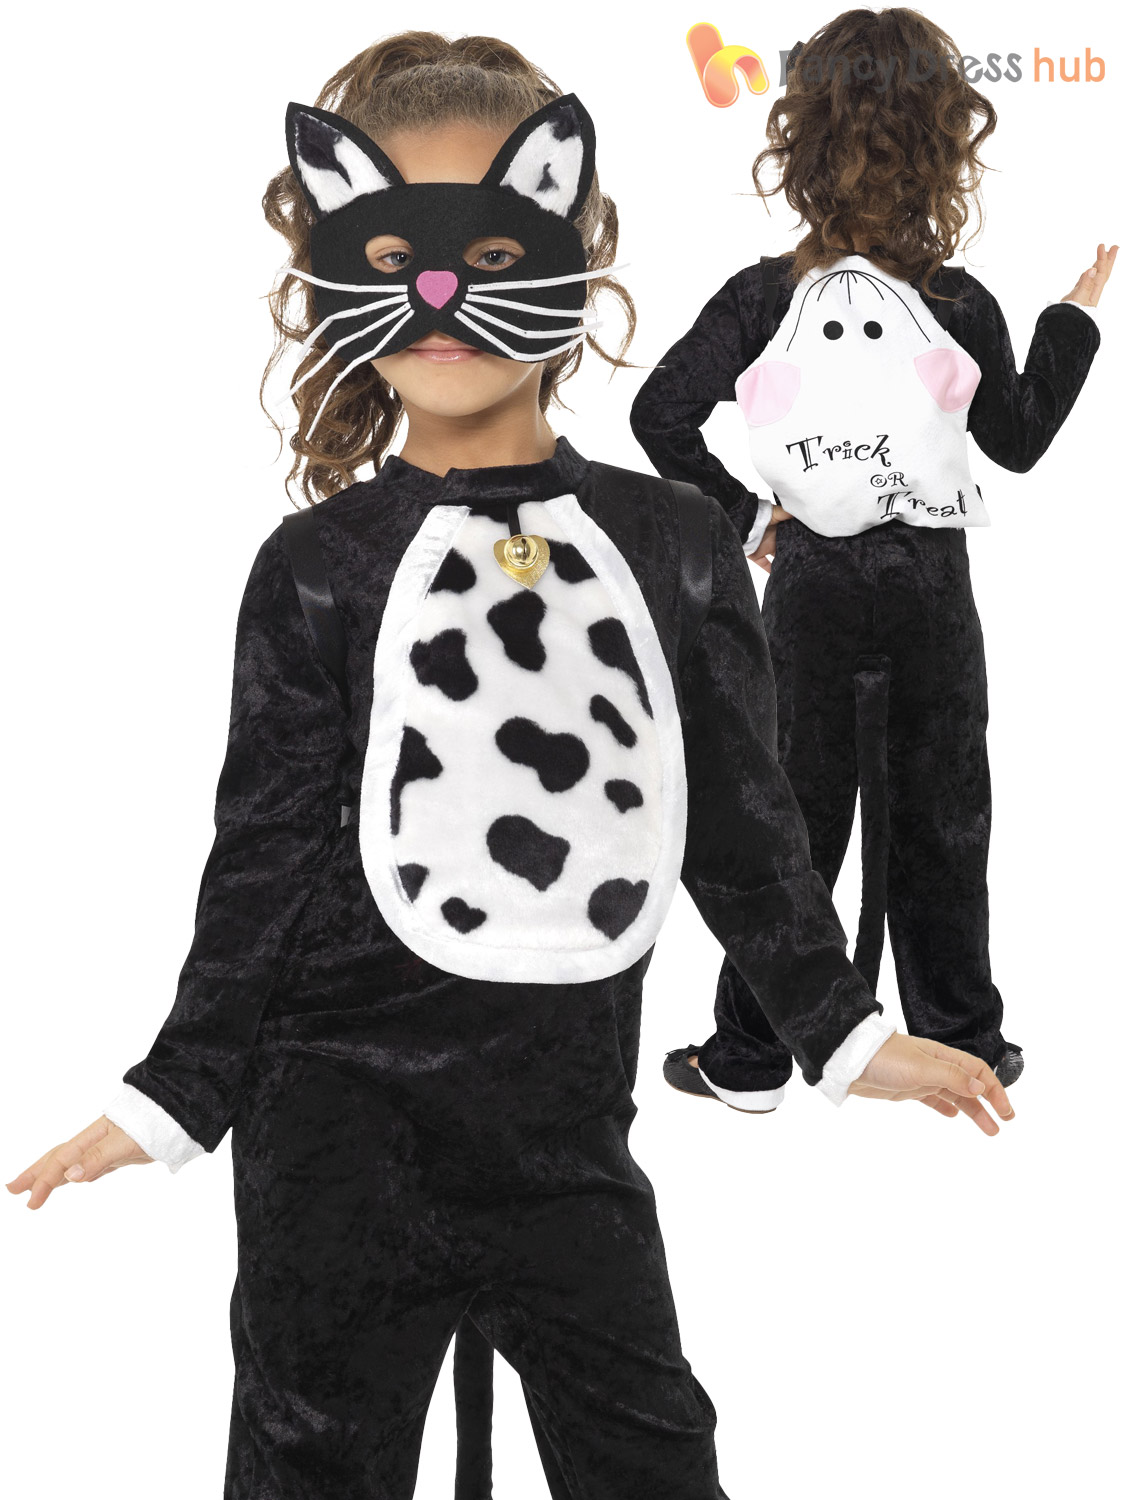 Girls-Halloween-Black-Cat-Fancy-Dress-Costume-Outfit-  sc 1 st  eBay & Girls Halloween Black Cat Fancy Dress Costume Outfit Book Week Kids ...